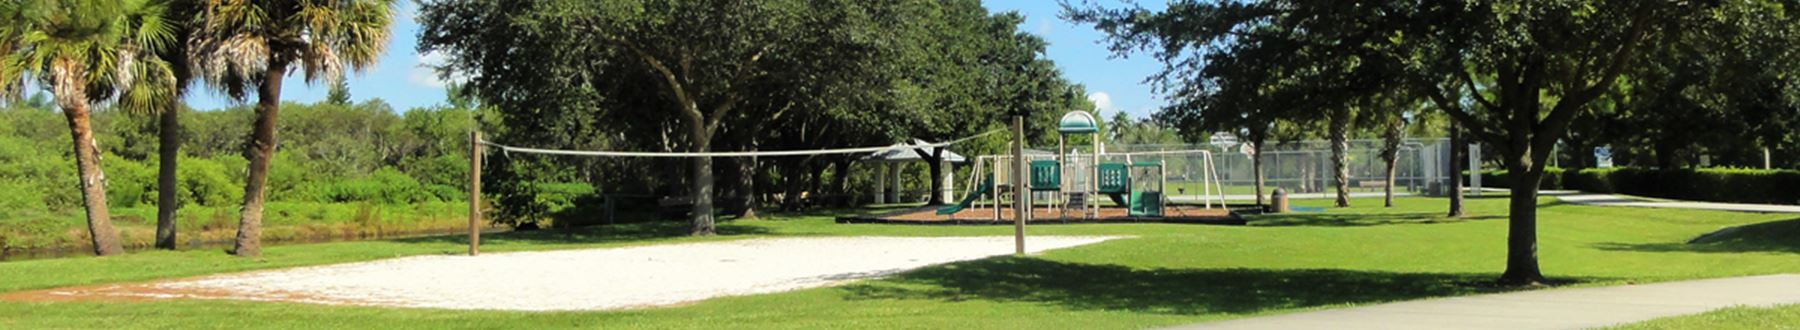 Sand volleyball court and playground at park